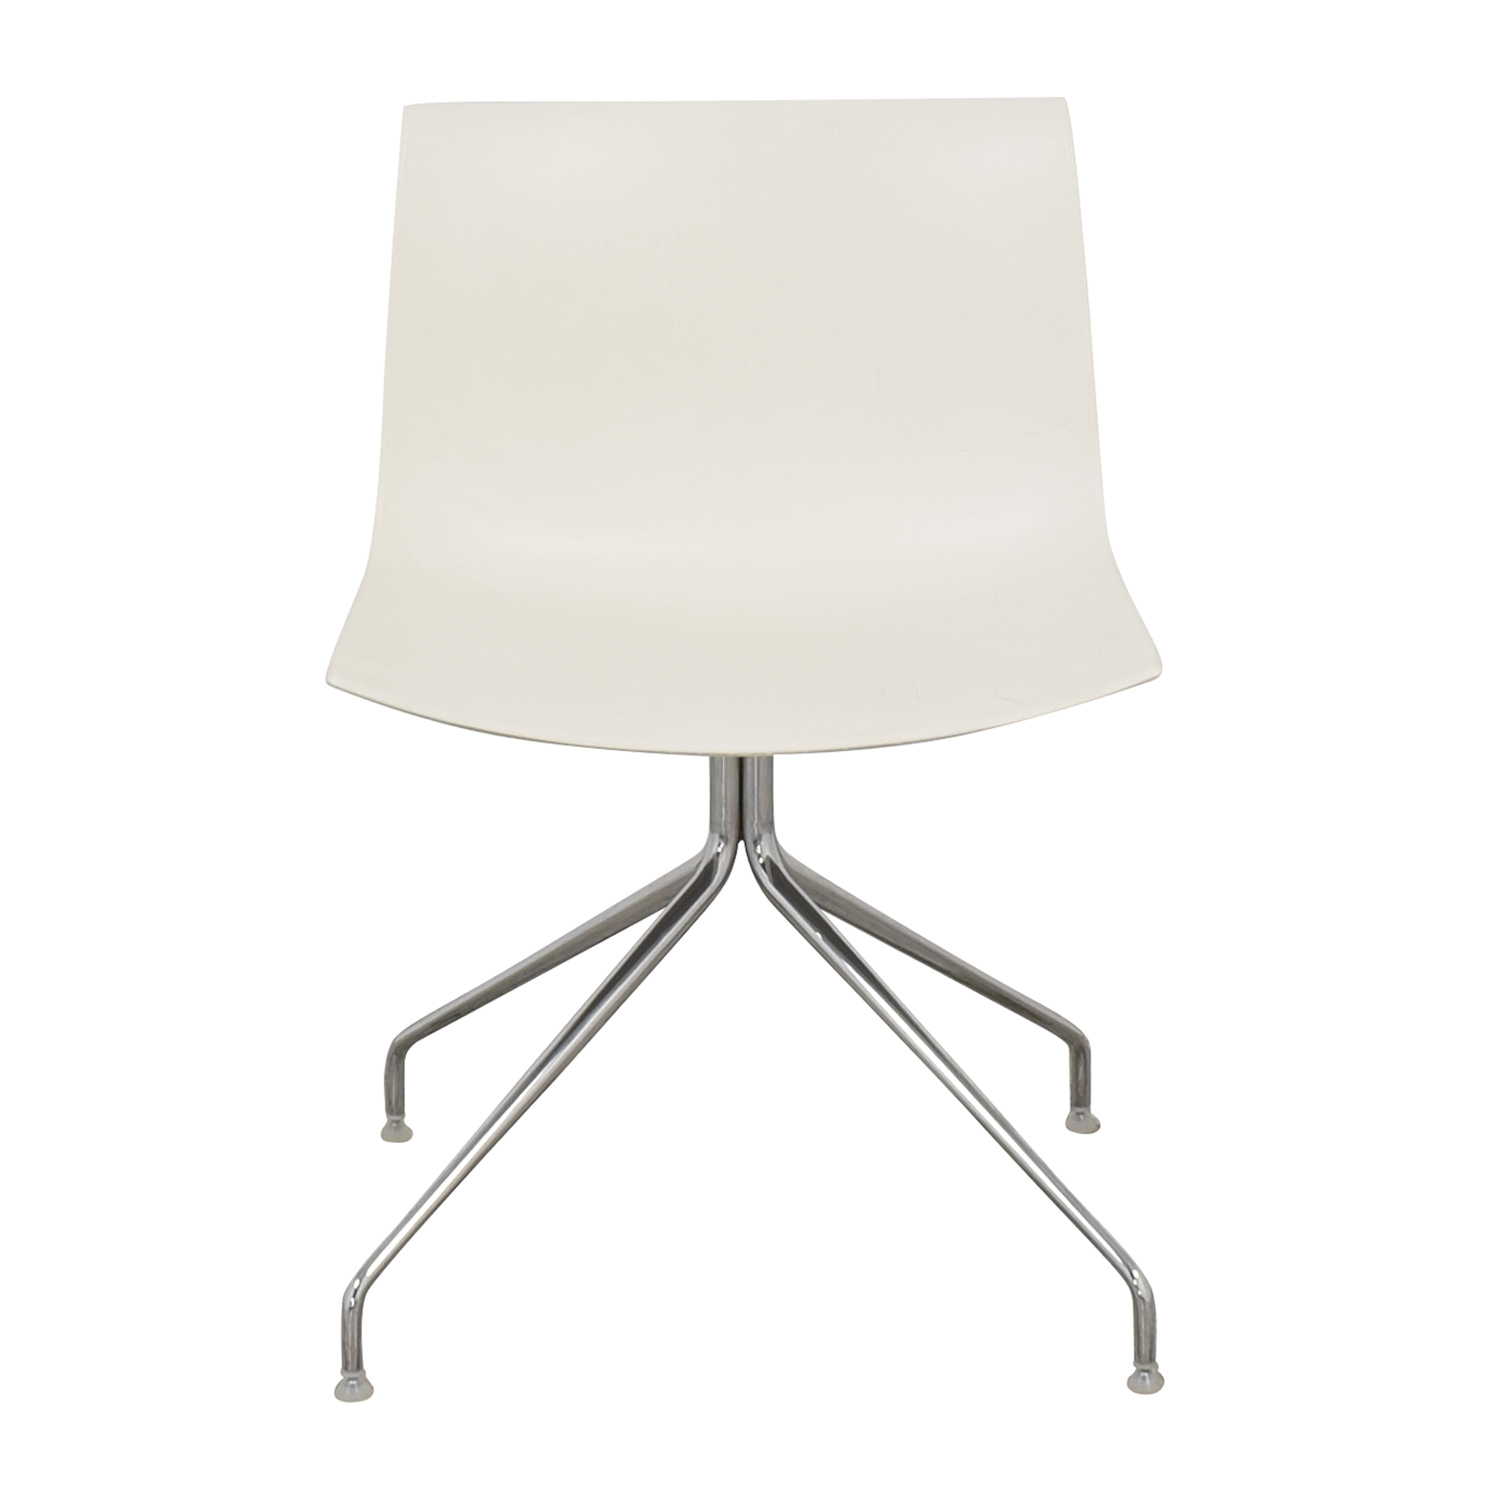 Arper Arper Catifa 46 Trestle Swivel Chair for sale